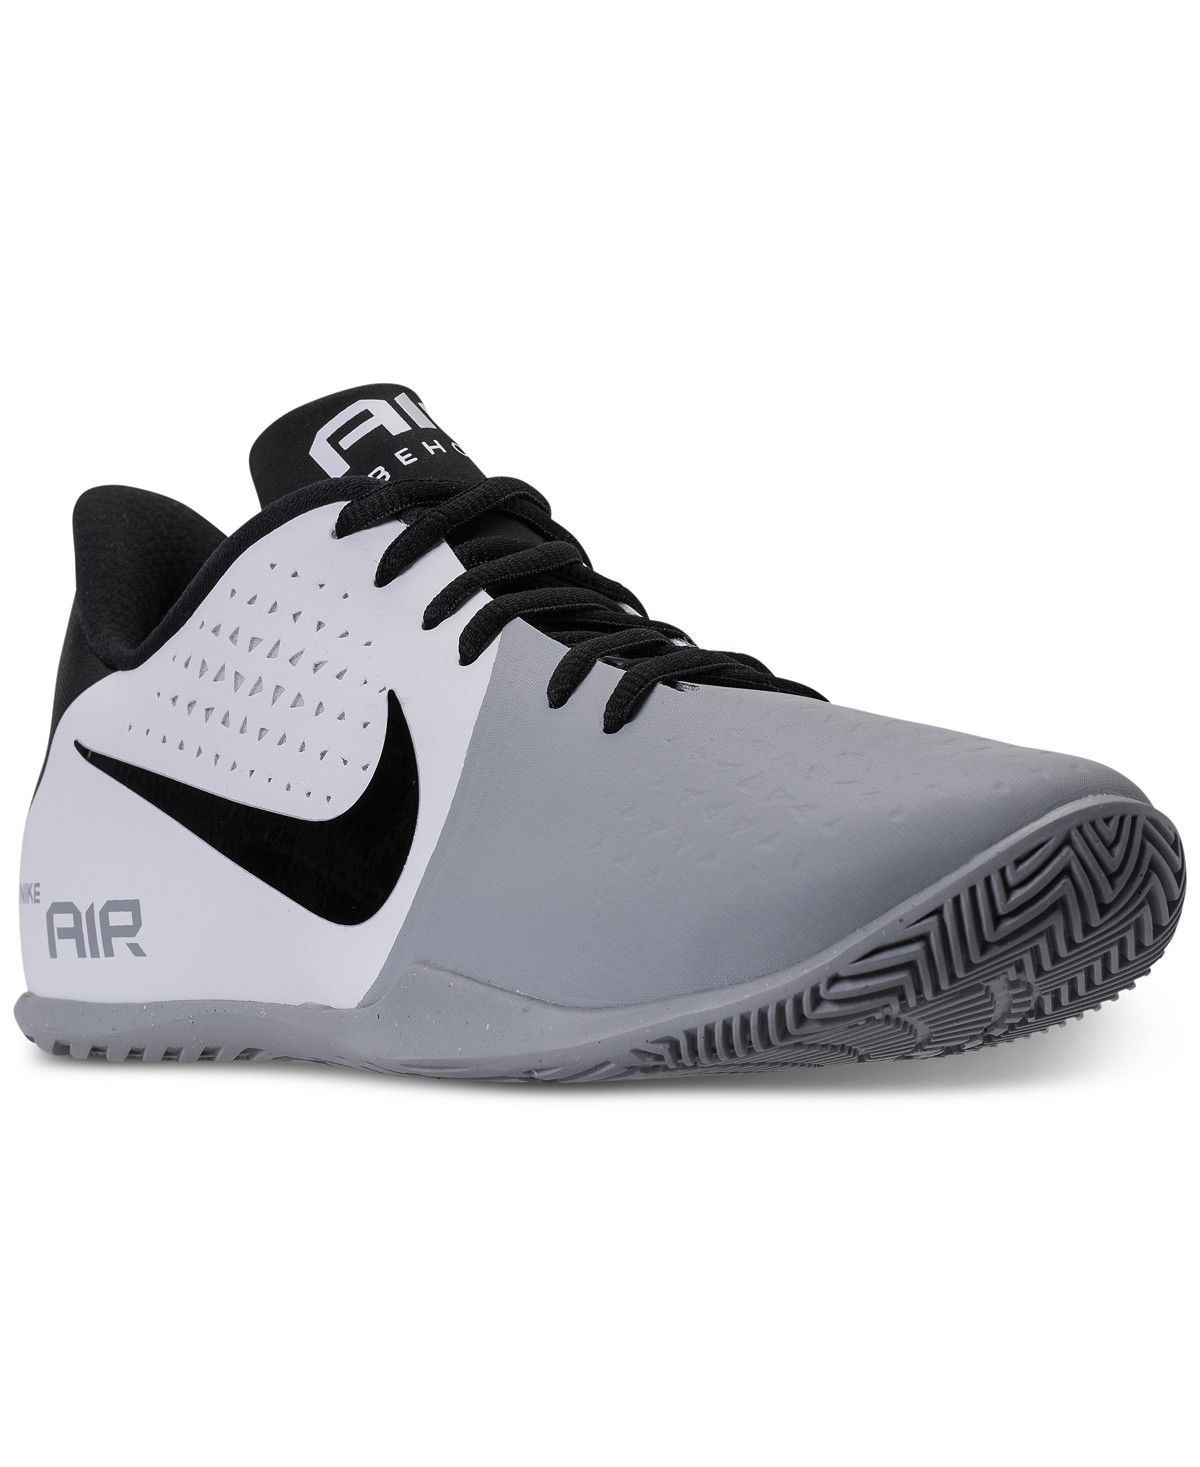 Men's Nike Air Behold Low Basketball Shoes 898450 101 Multip Sizes White/Black/